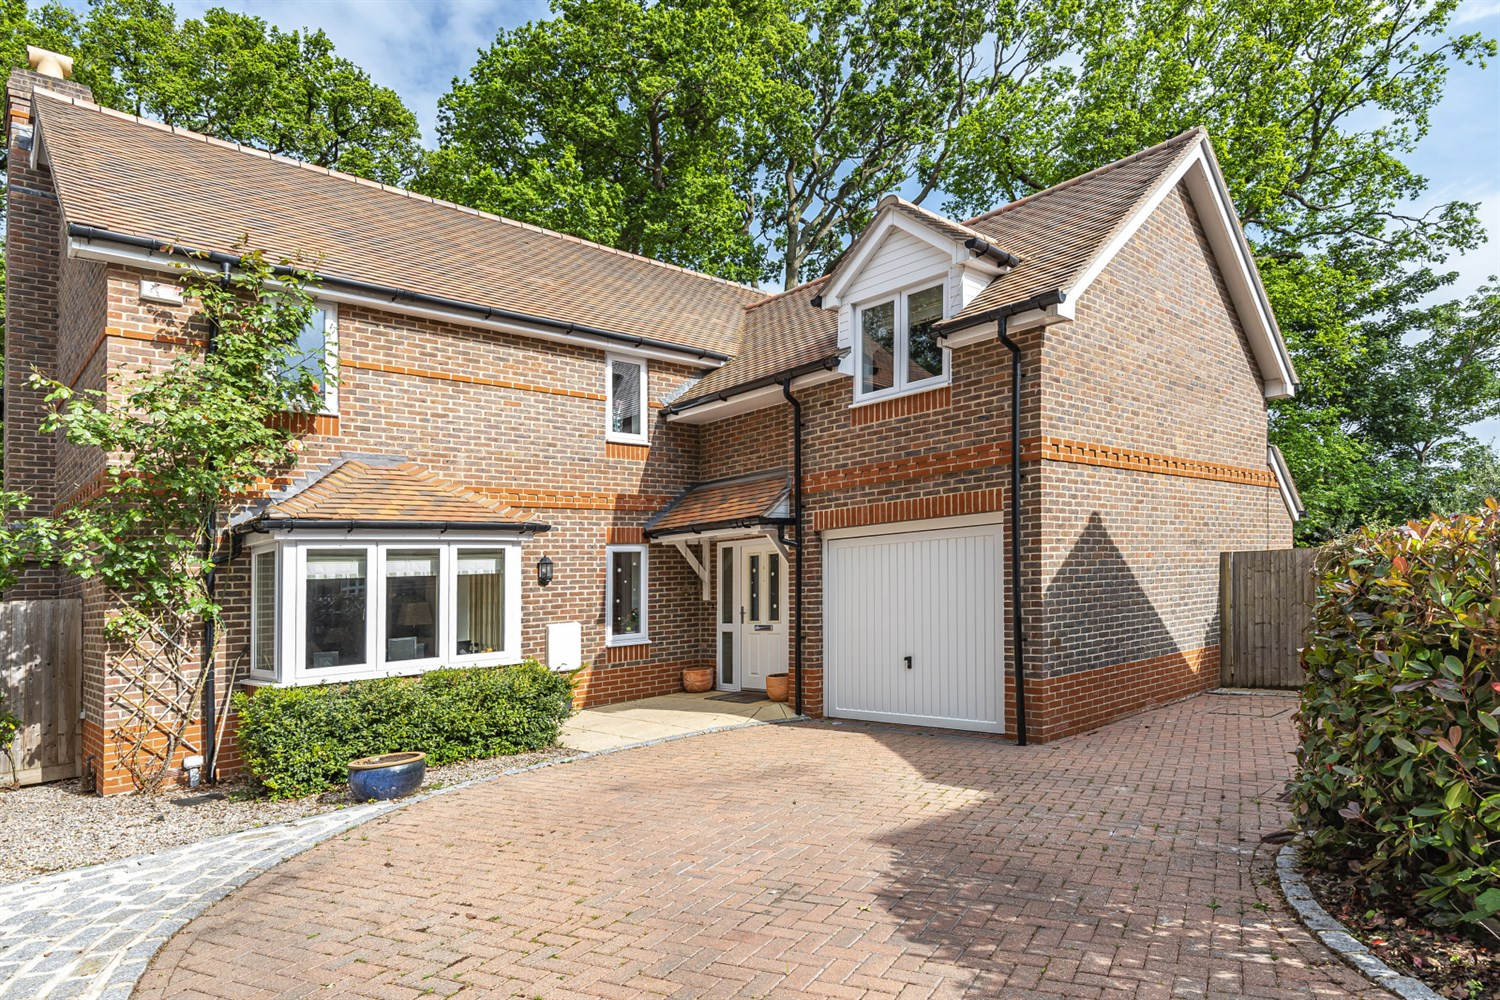 Wildwood Close, Reading, RG5 3BY